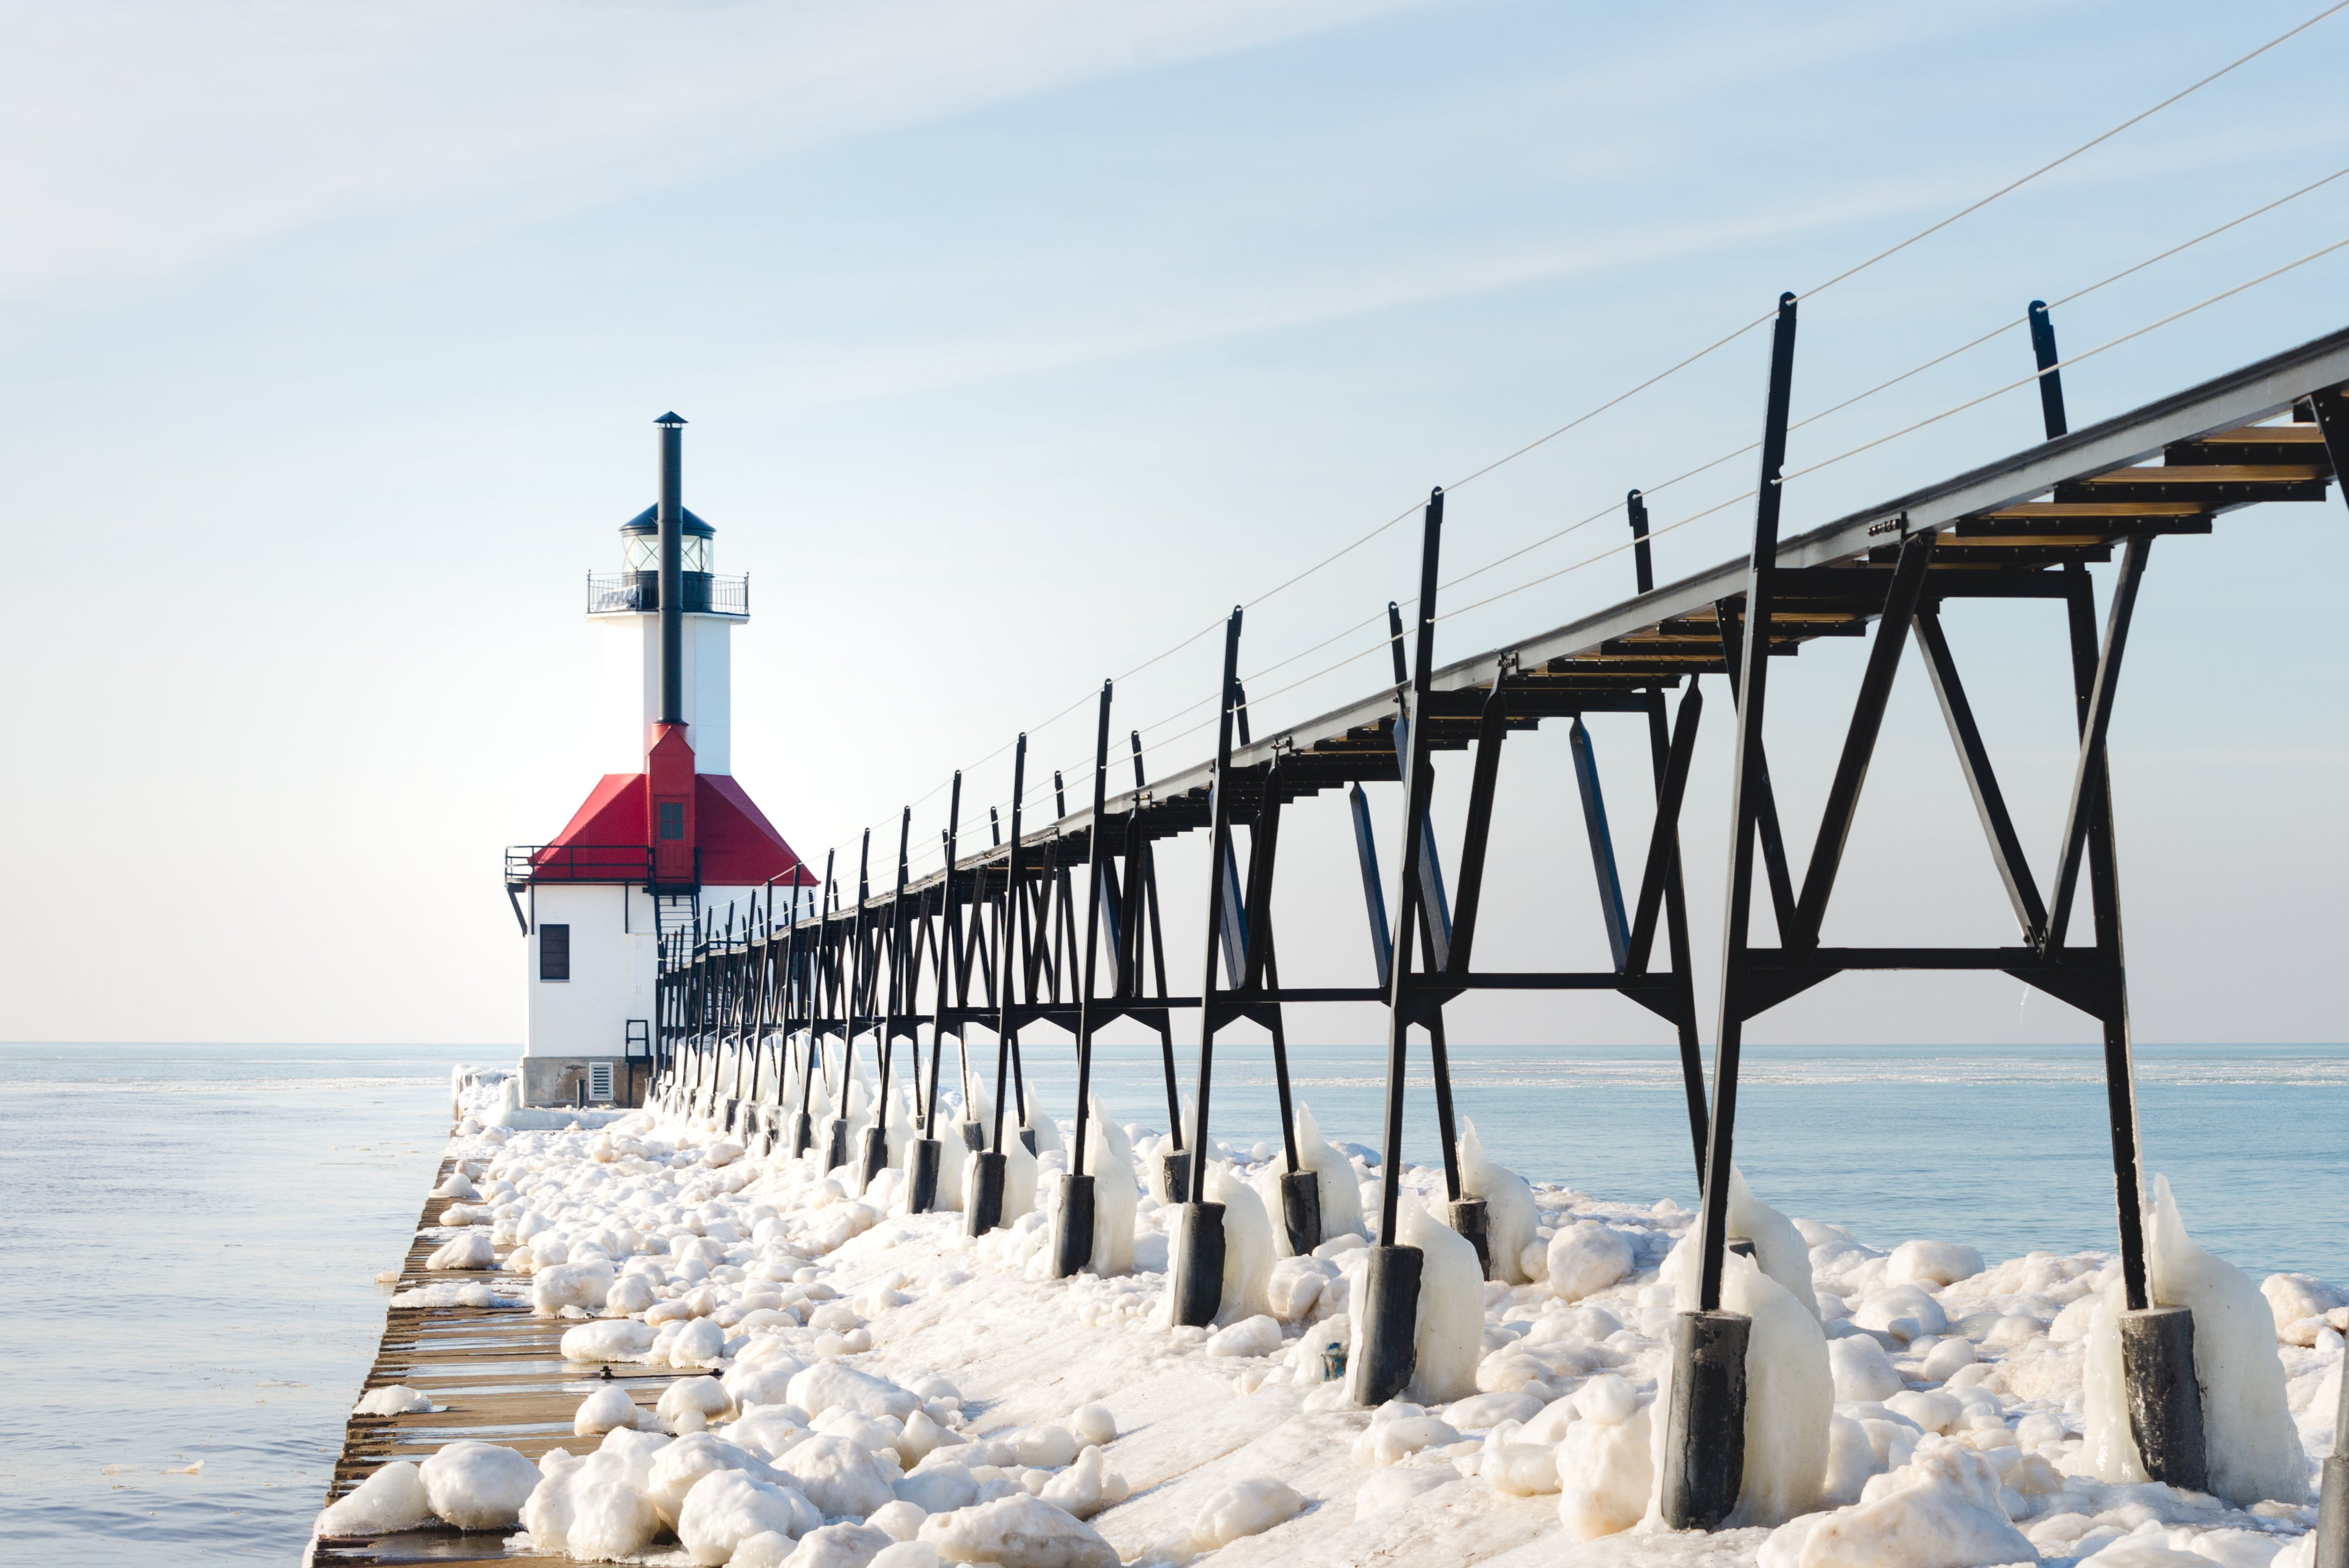 Red and White Concrete Lighthouse Surrounded by Snow Near Body of Water